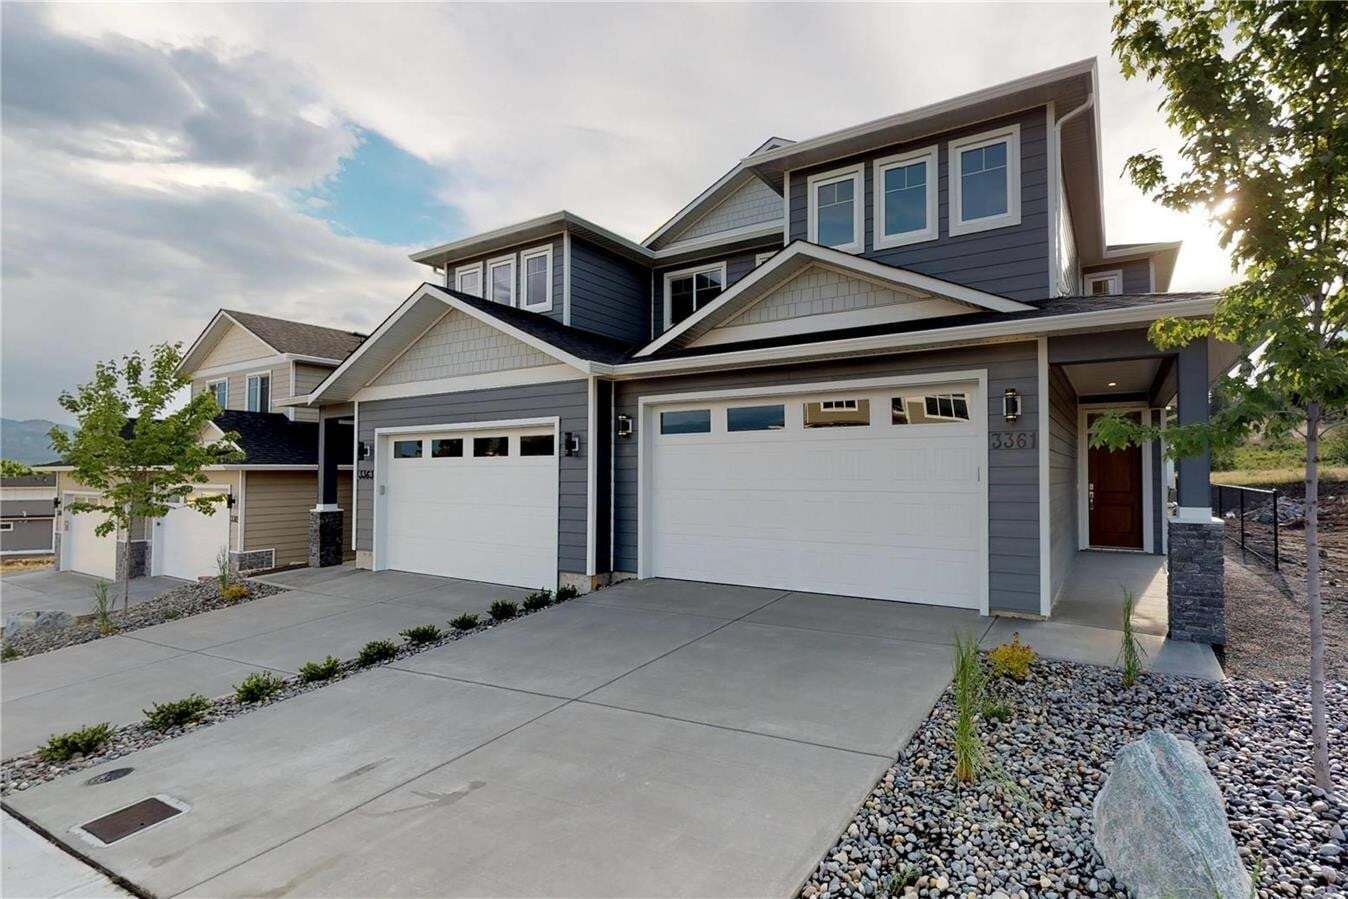 House for sale at 2349 Hawks Blvd Westbank British Columbia - MLS: 10217758